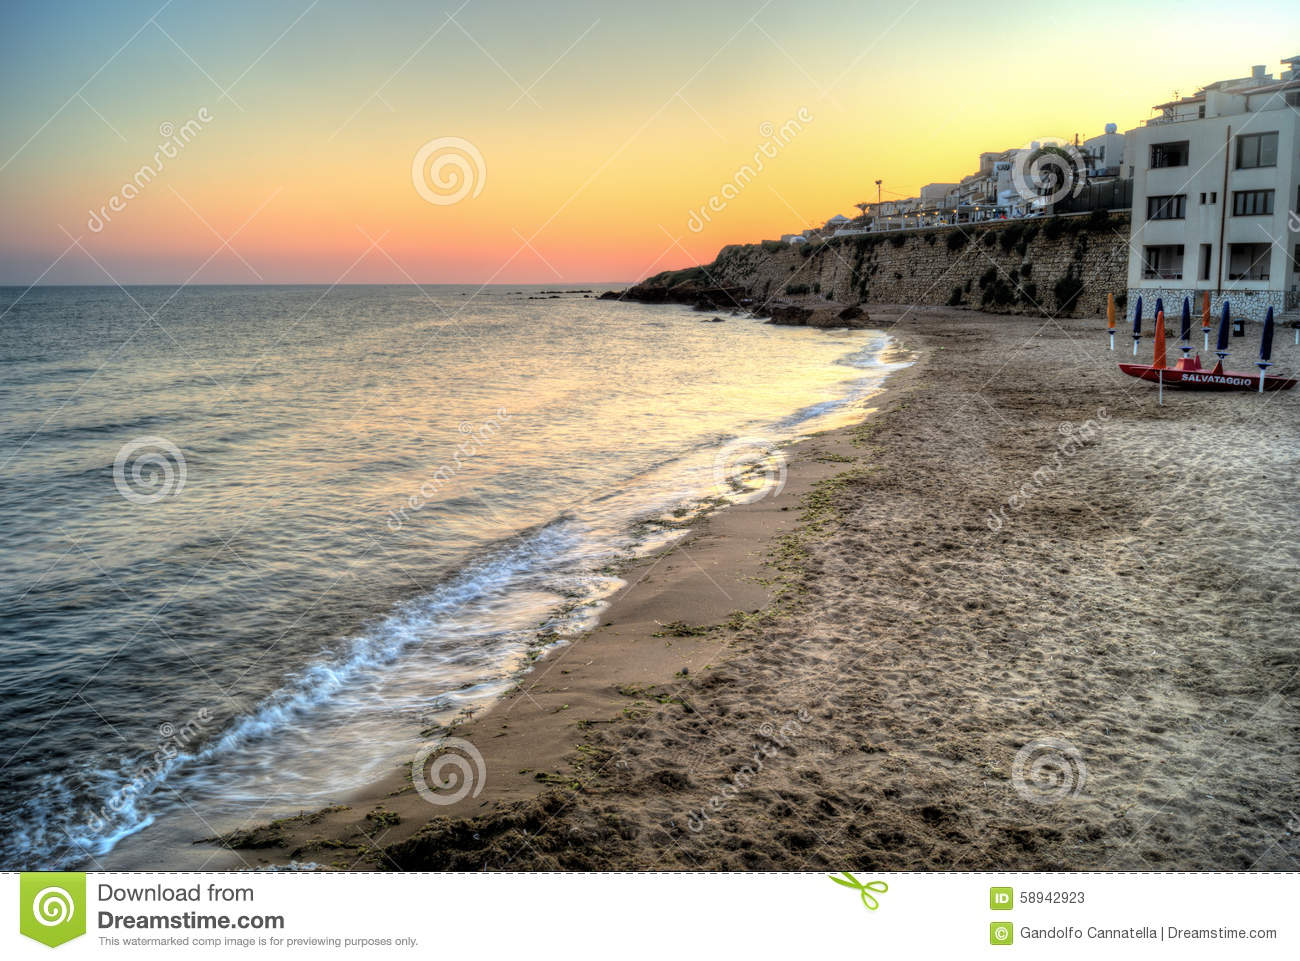 Selinunte beach at sunset in Sicily